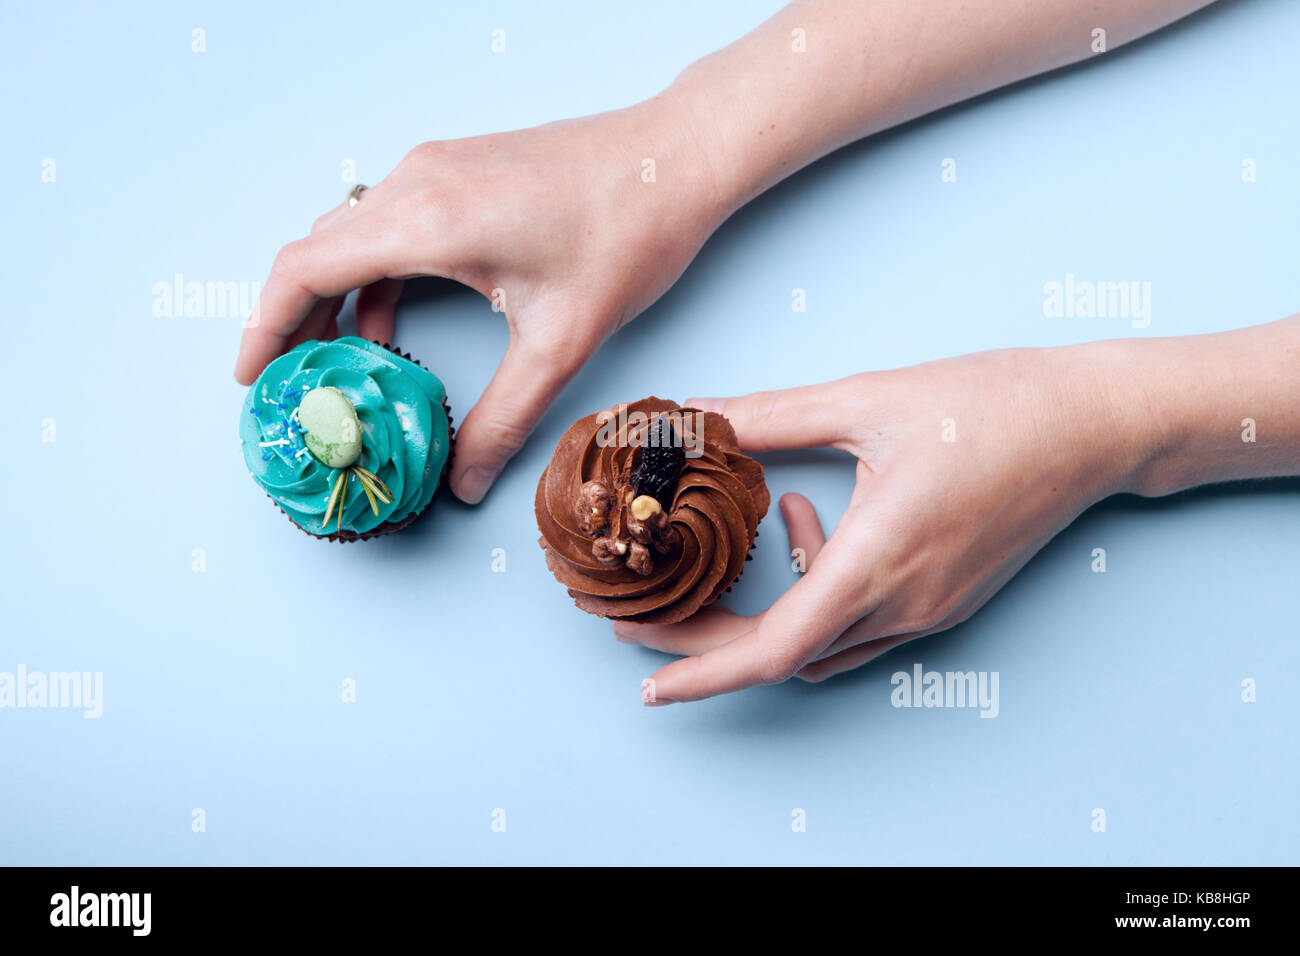 Two delicious cupcakes with cream in hands on a blue background - Stock Image